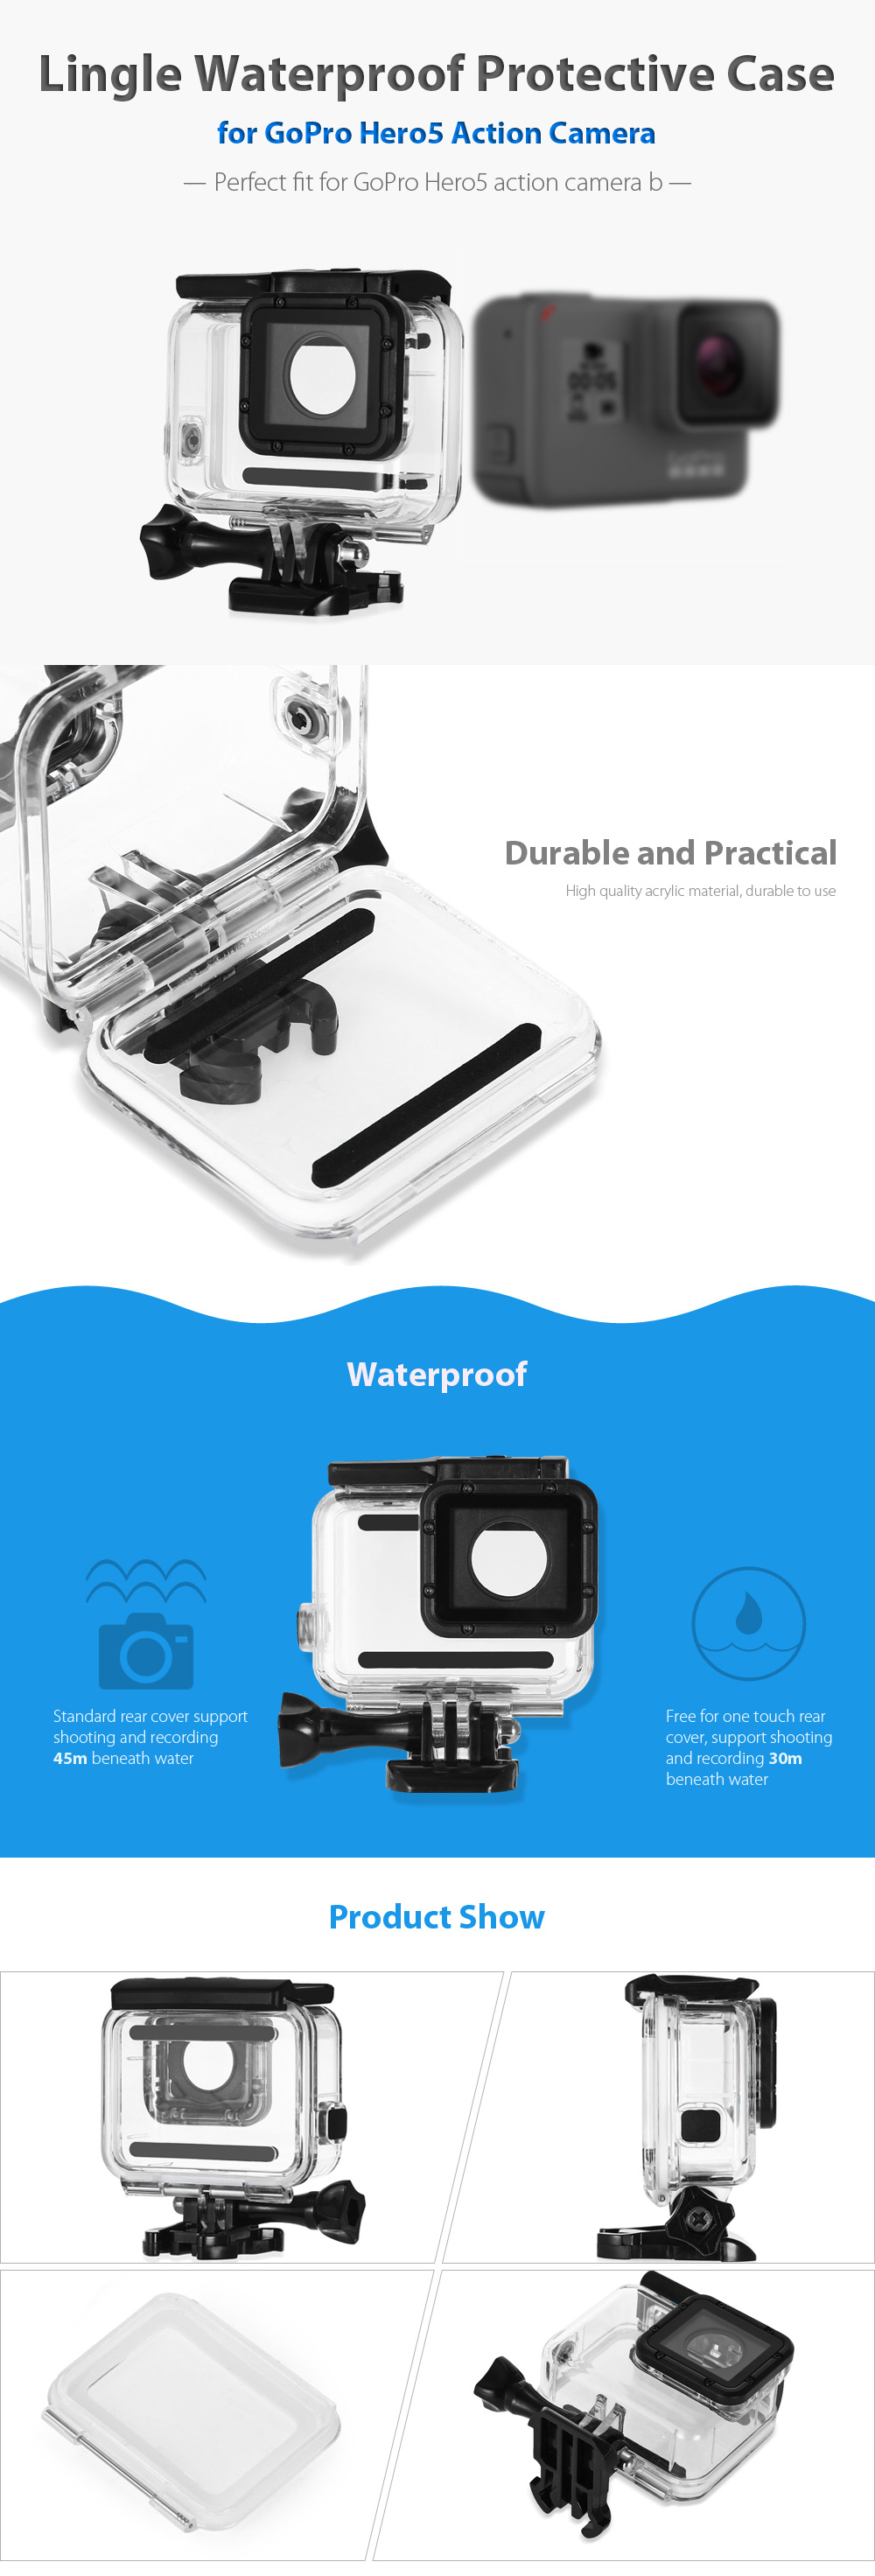 Original Lingle Waterproof Protective Case for GoPro Hero5 Black Action Camera with Touch Rear Cover